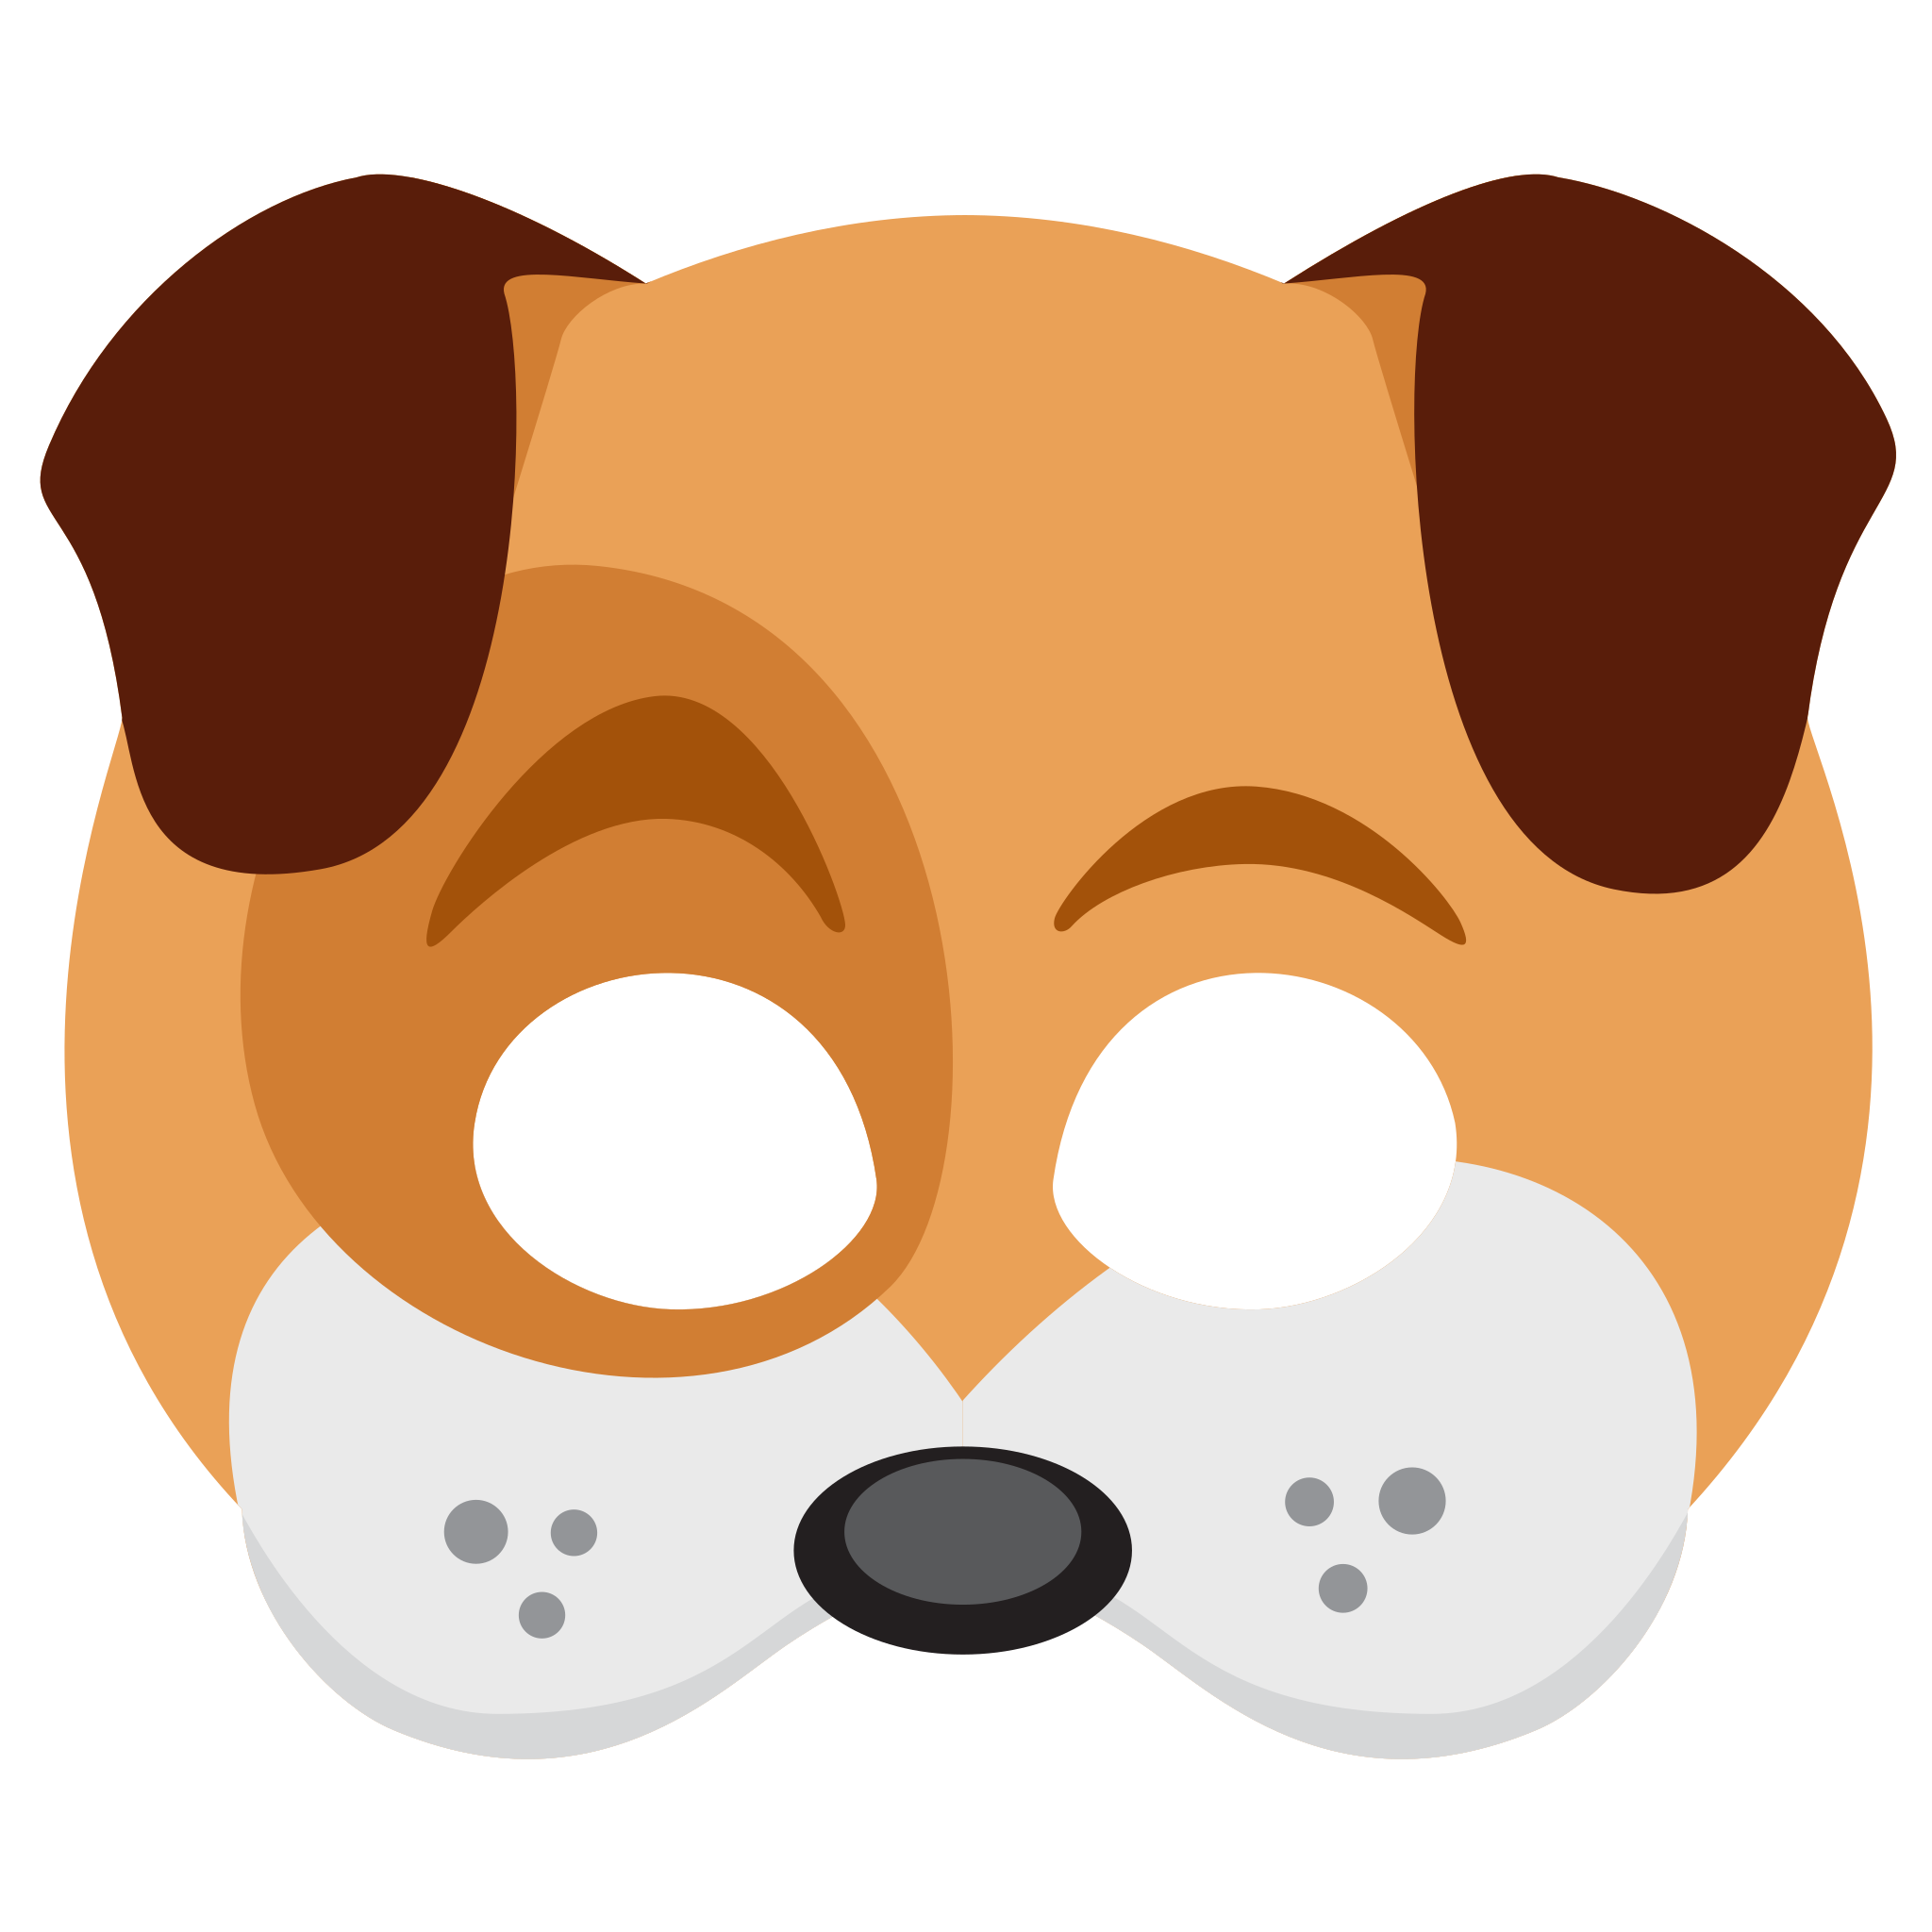 clipart free library Mask clipart animal. Dog face sticker png.